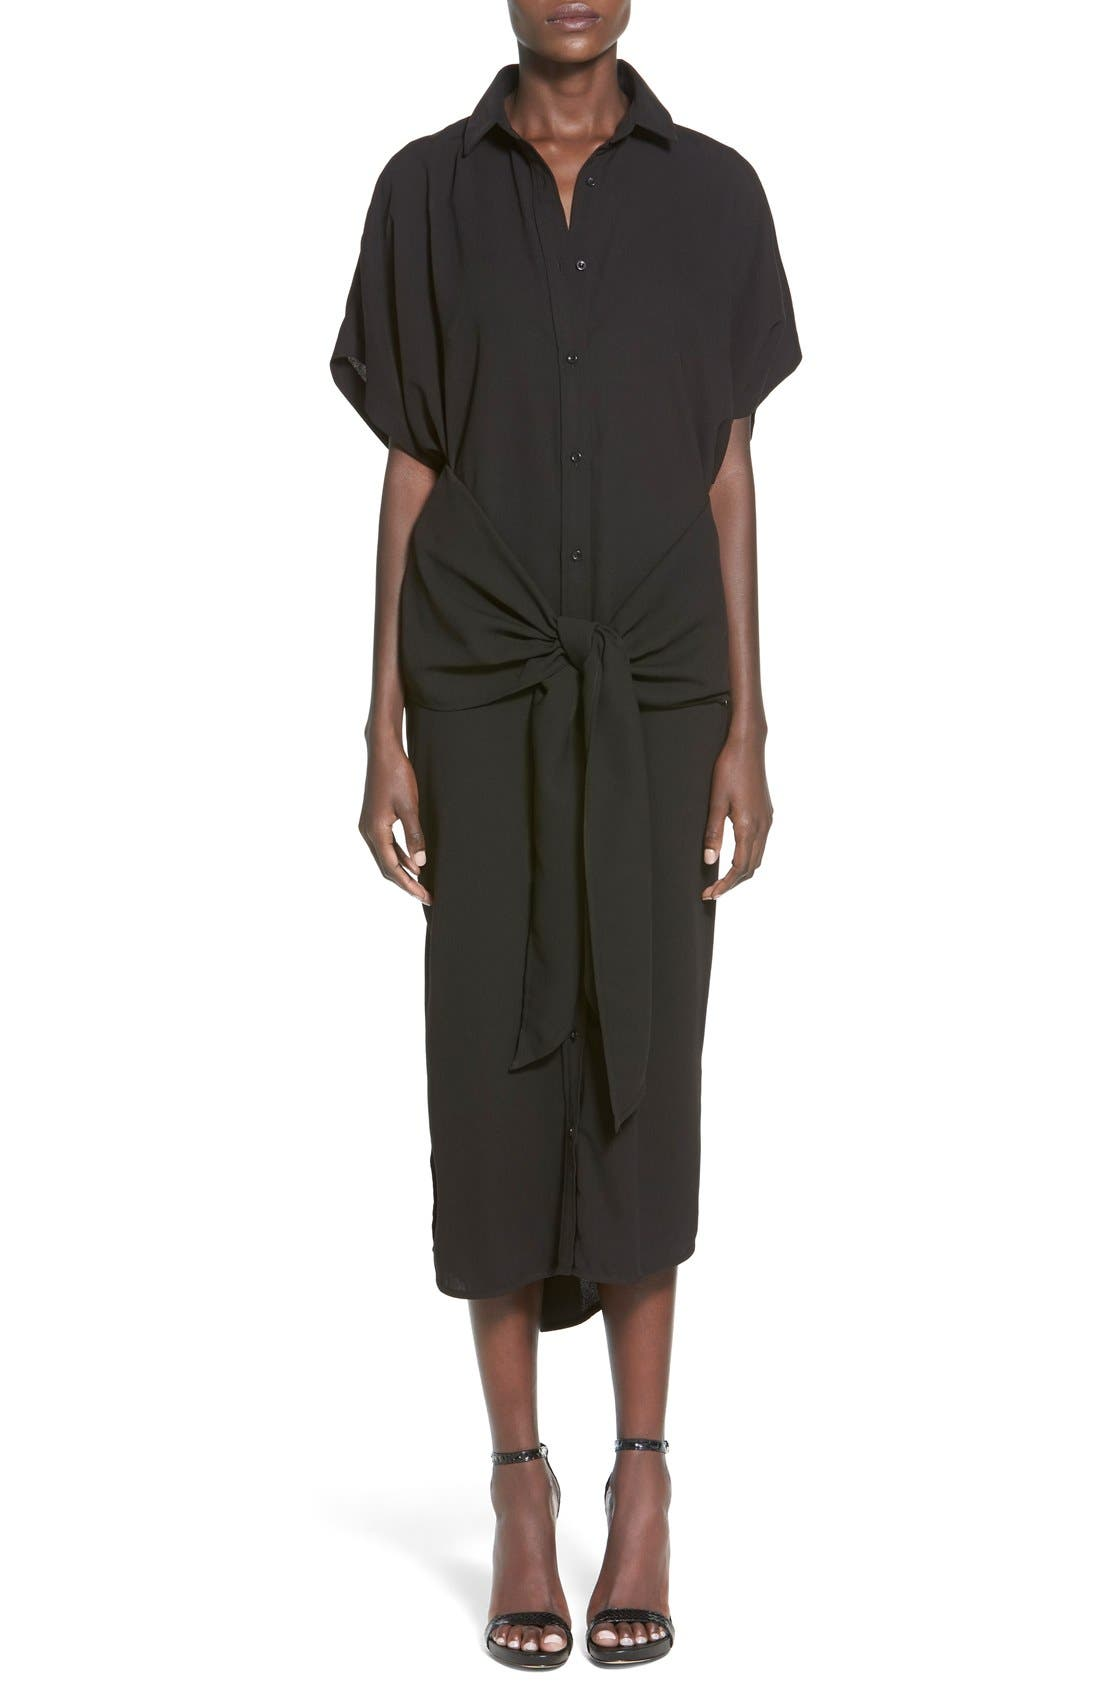 Alternate Image 1 Selected - C/MEO Collective 'No Limit' Tie Front Midi Shirtdress